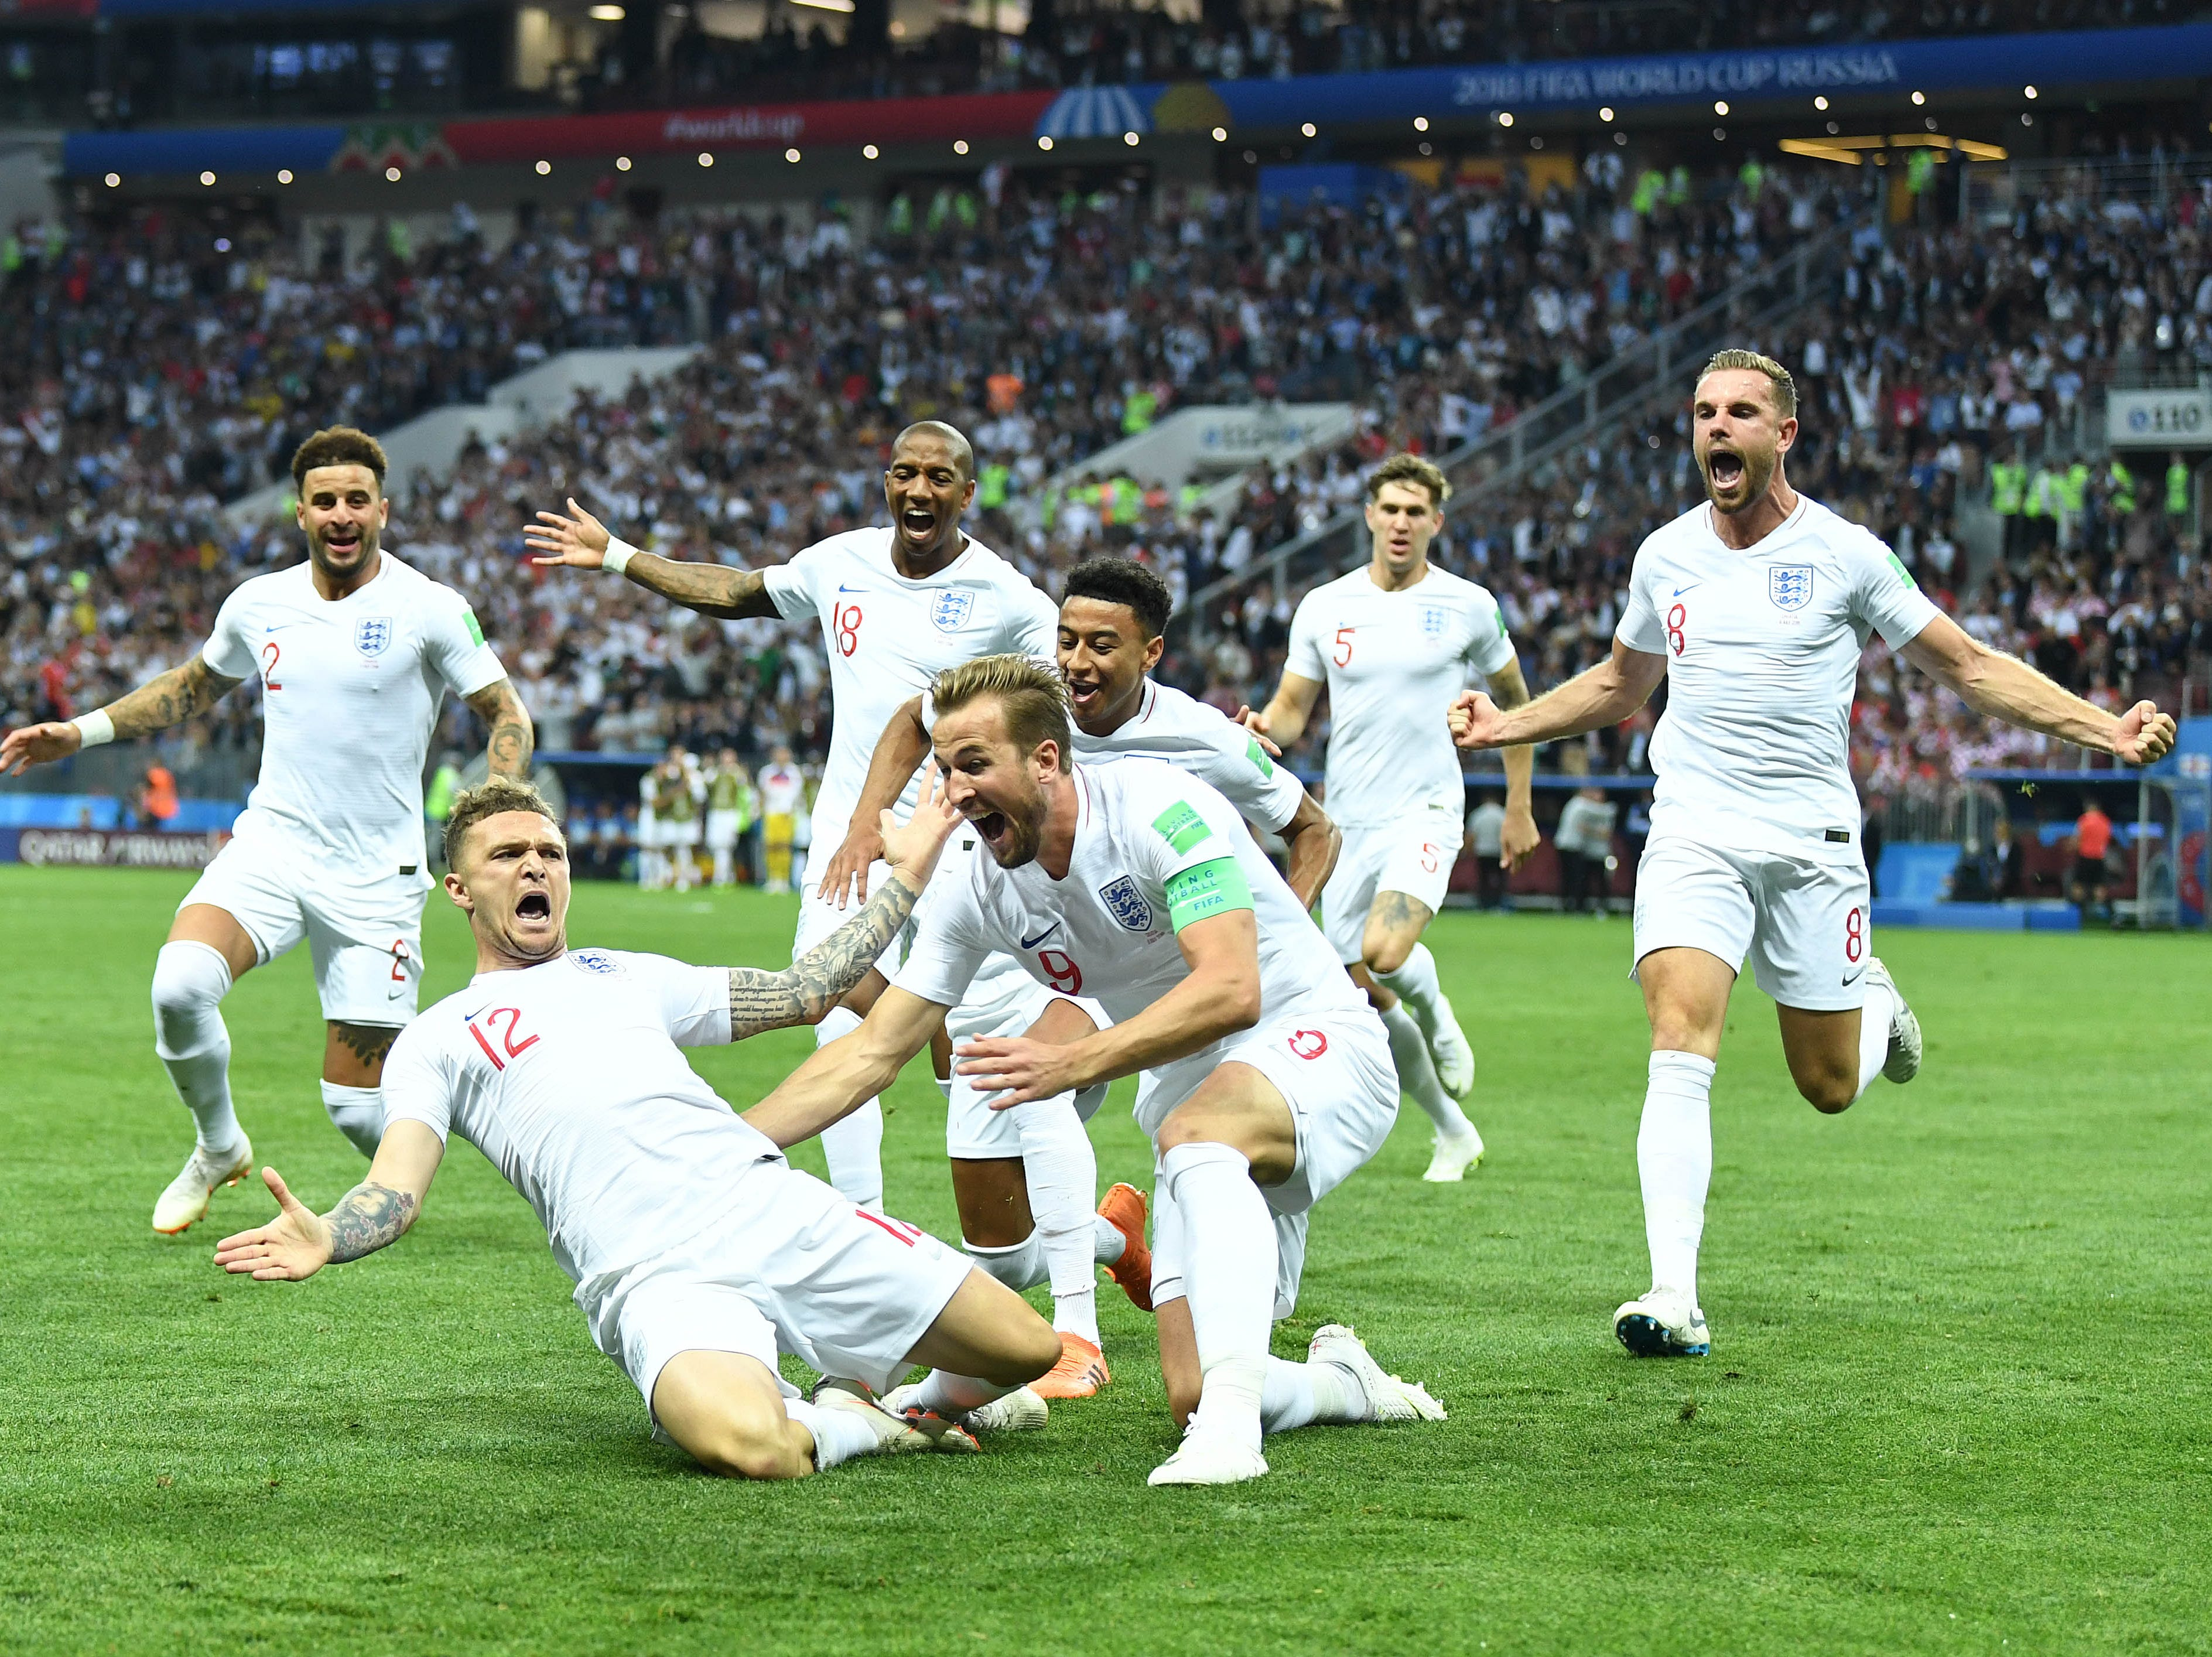 July 11: England celebrates a goal against Croatia during the first half of a World Cup semifinal.